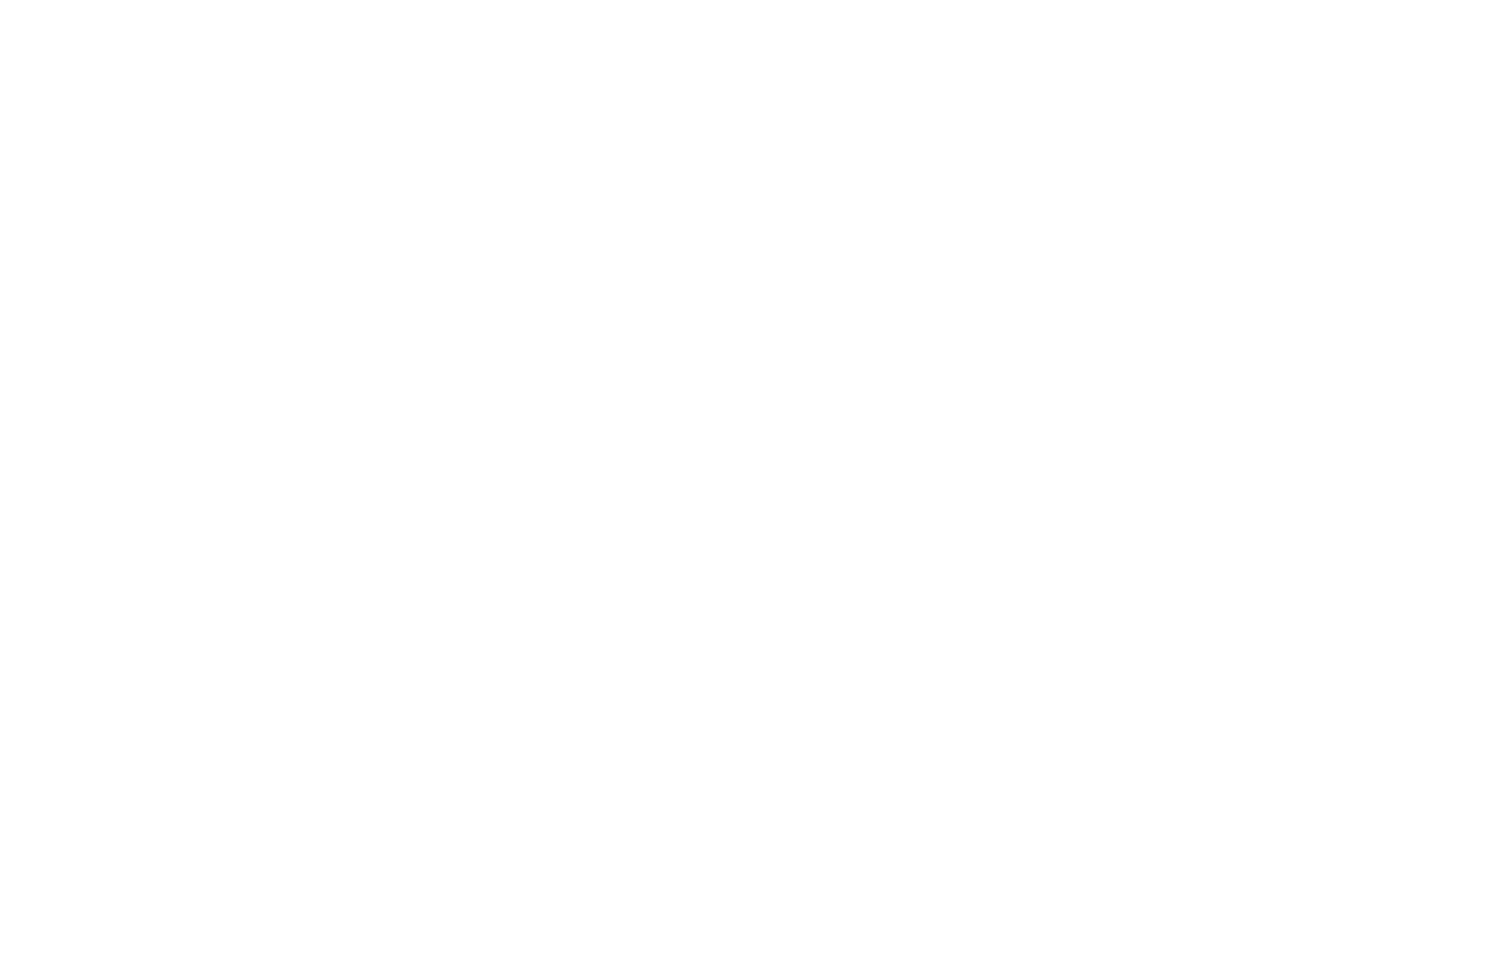 Southwest Hills Dentistry